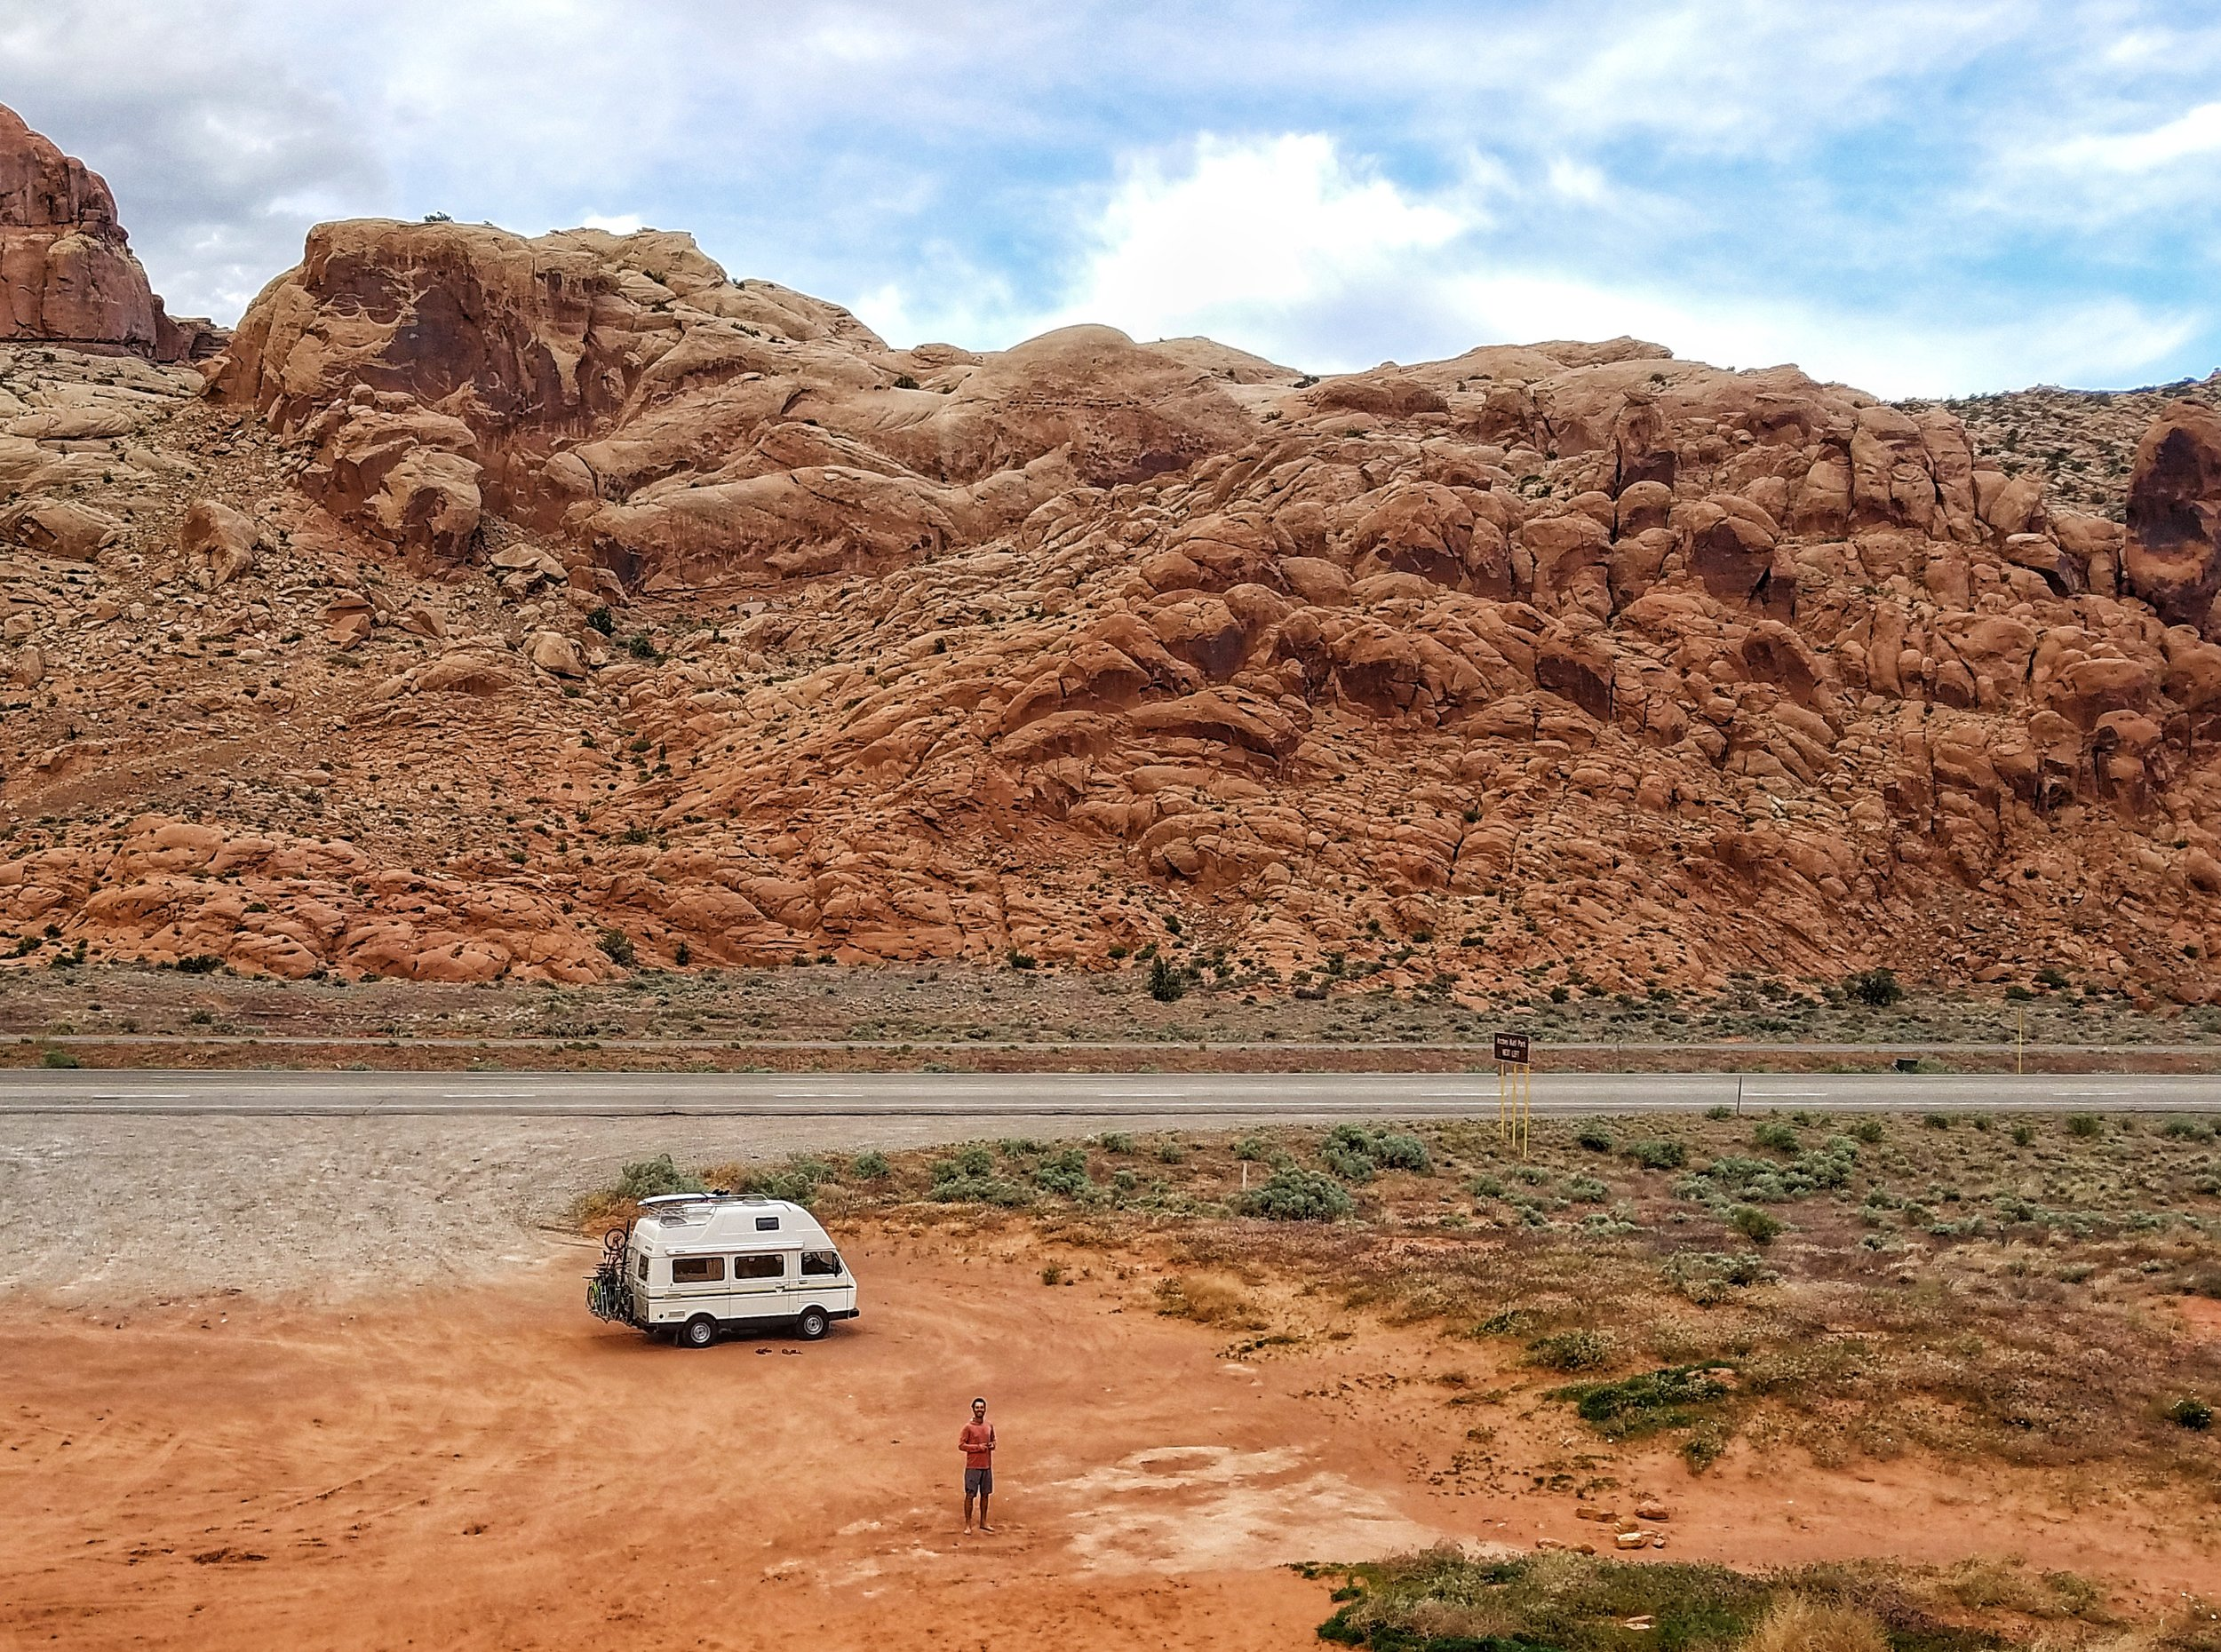 Stop 1: three hours into our road trip we paused in Moab, Utah at the sand dune outside Arches National Park. A great place to stretch legs, get the heard pumping, and to enjoy PB&J sandwiches